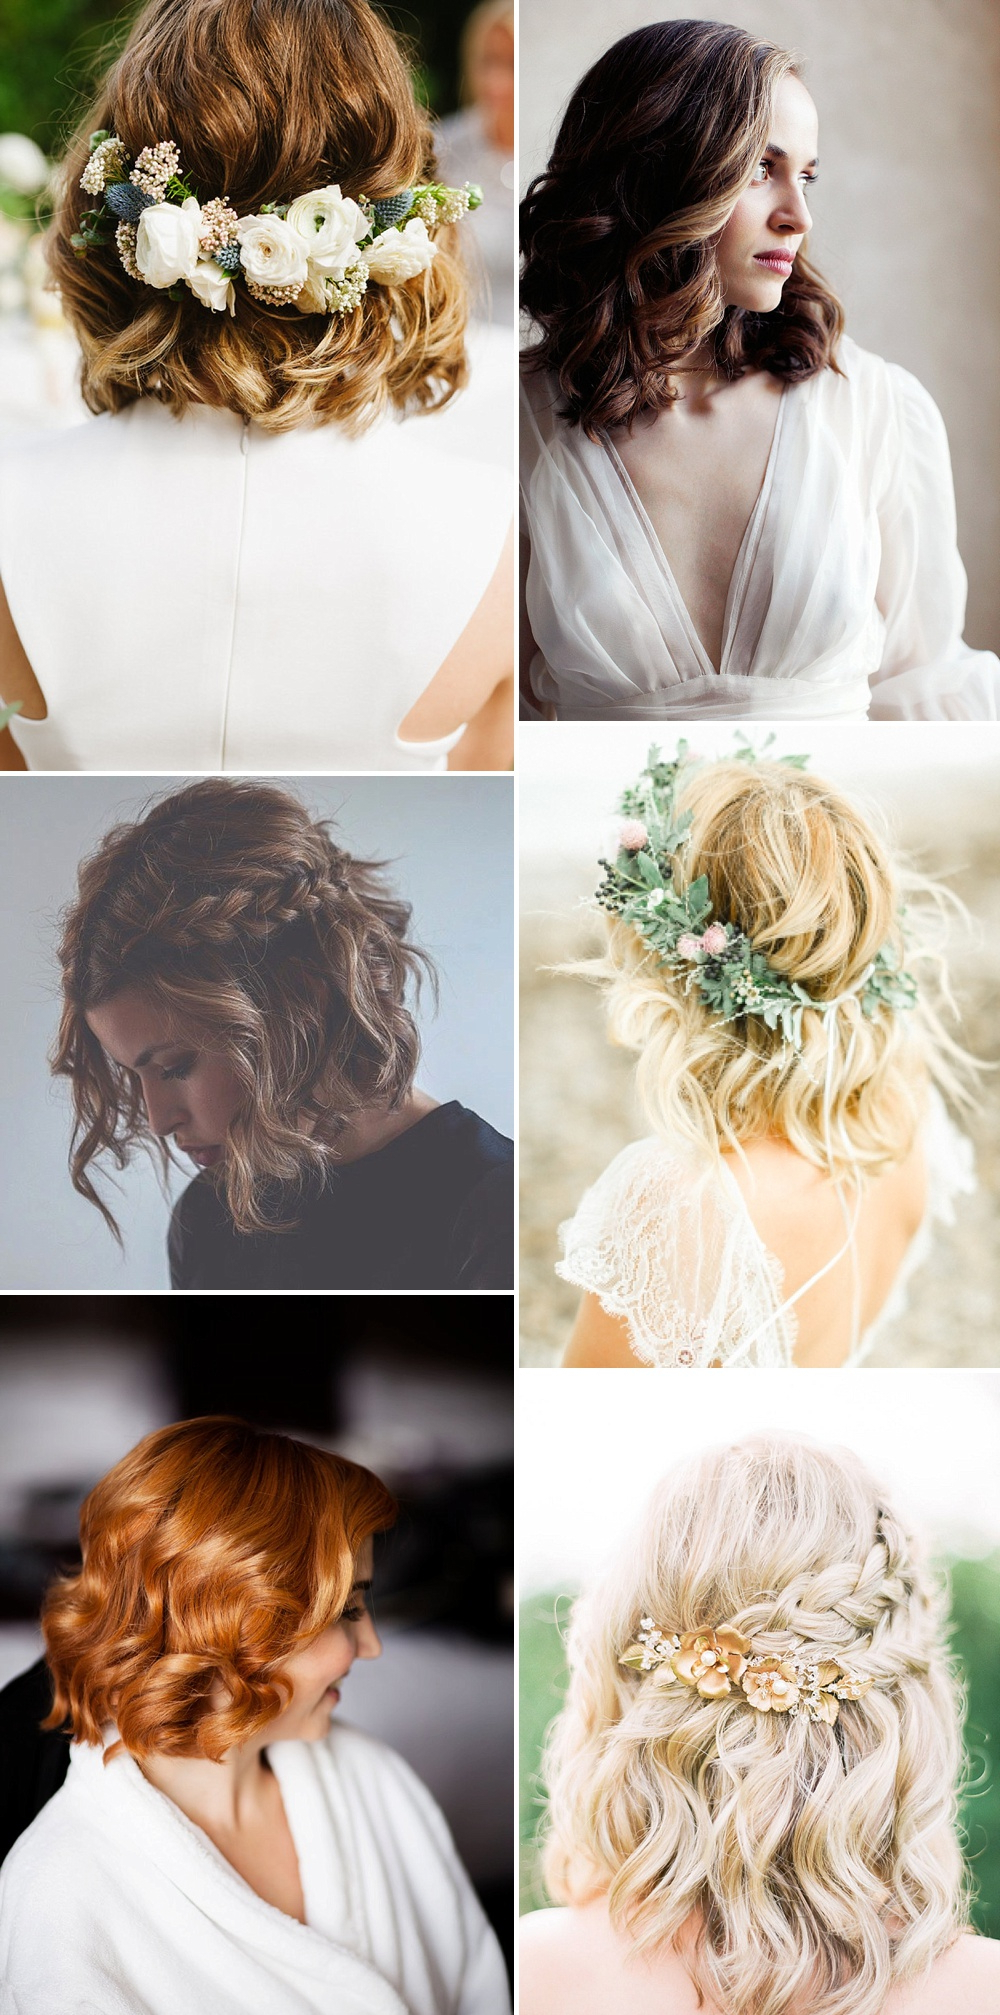 Wedding Hair Ideas For Stylish Brides & Trends For 2017 In Well Known Short And Sweet Hairstyles For Wedding (View 6 of 20)